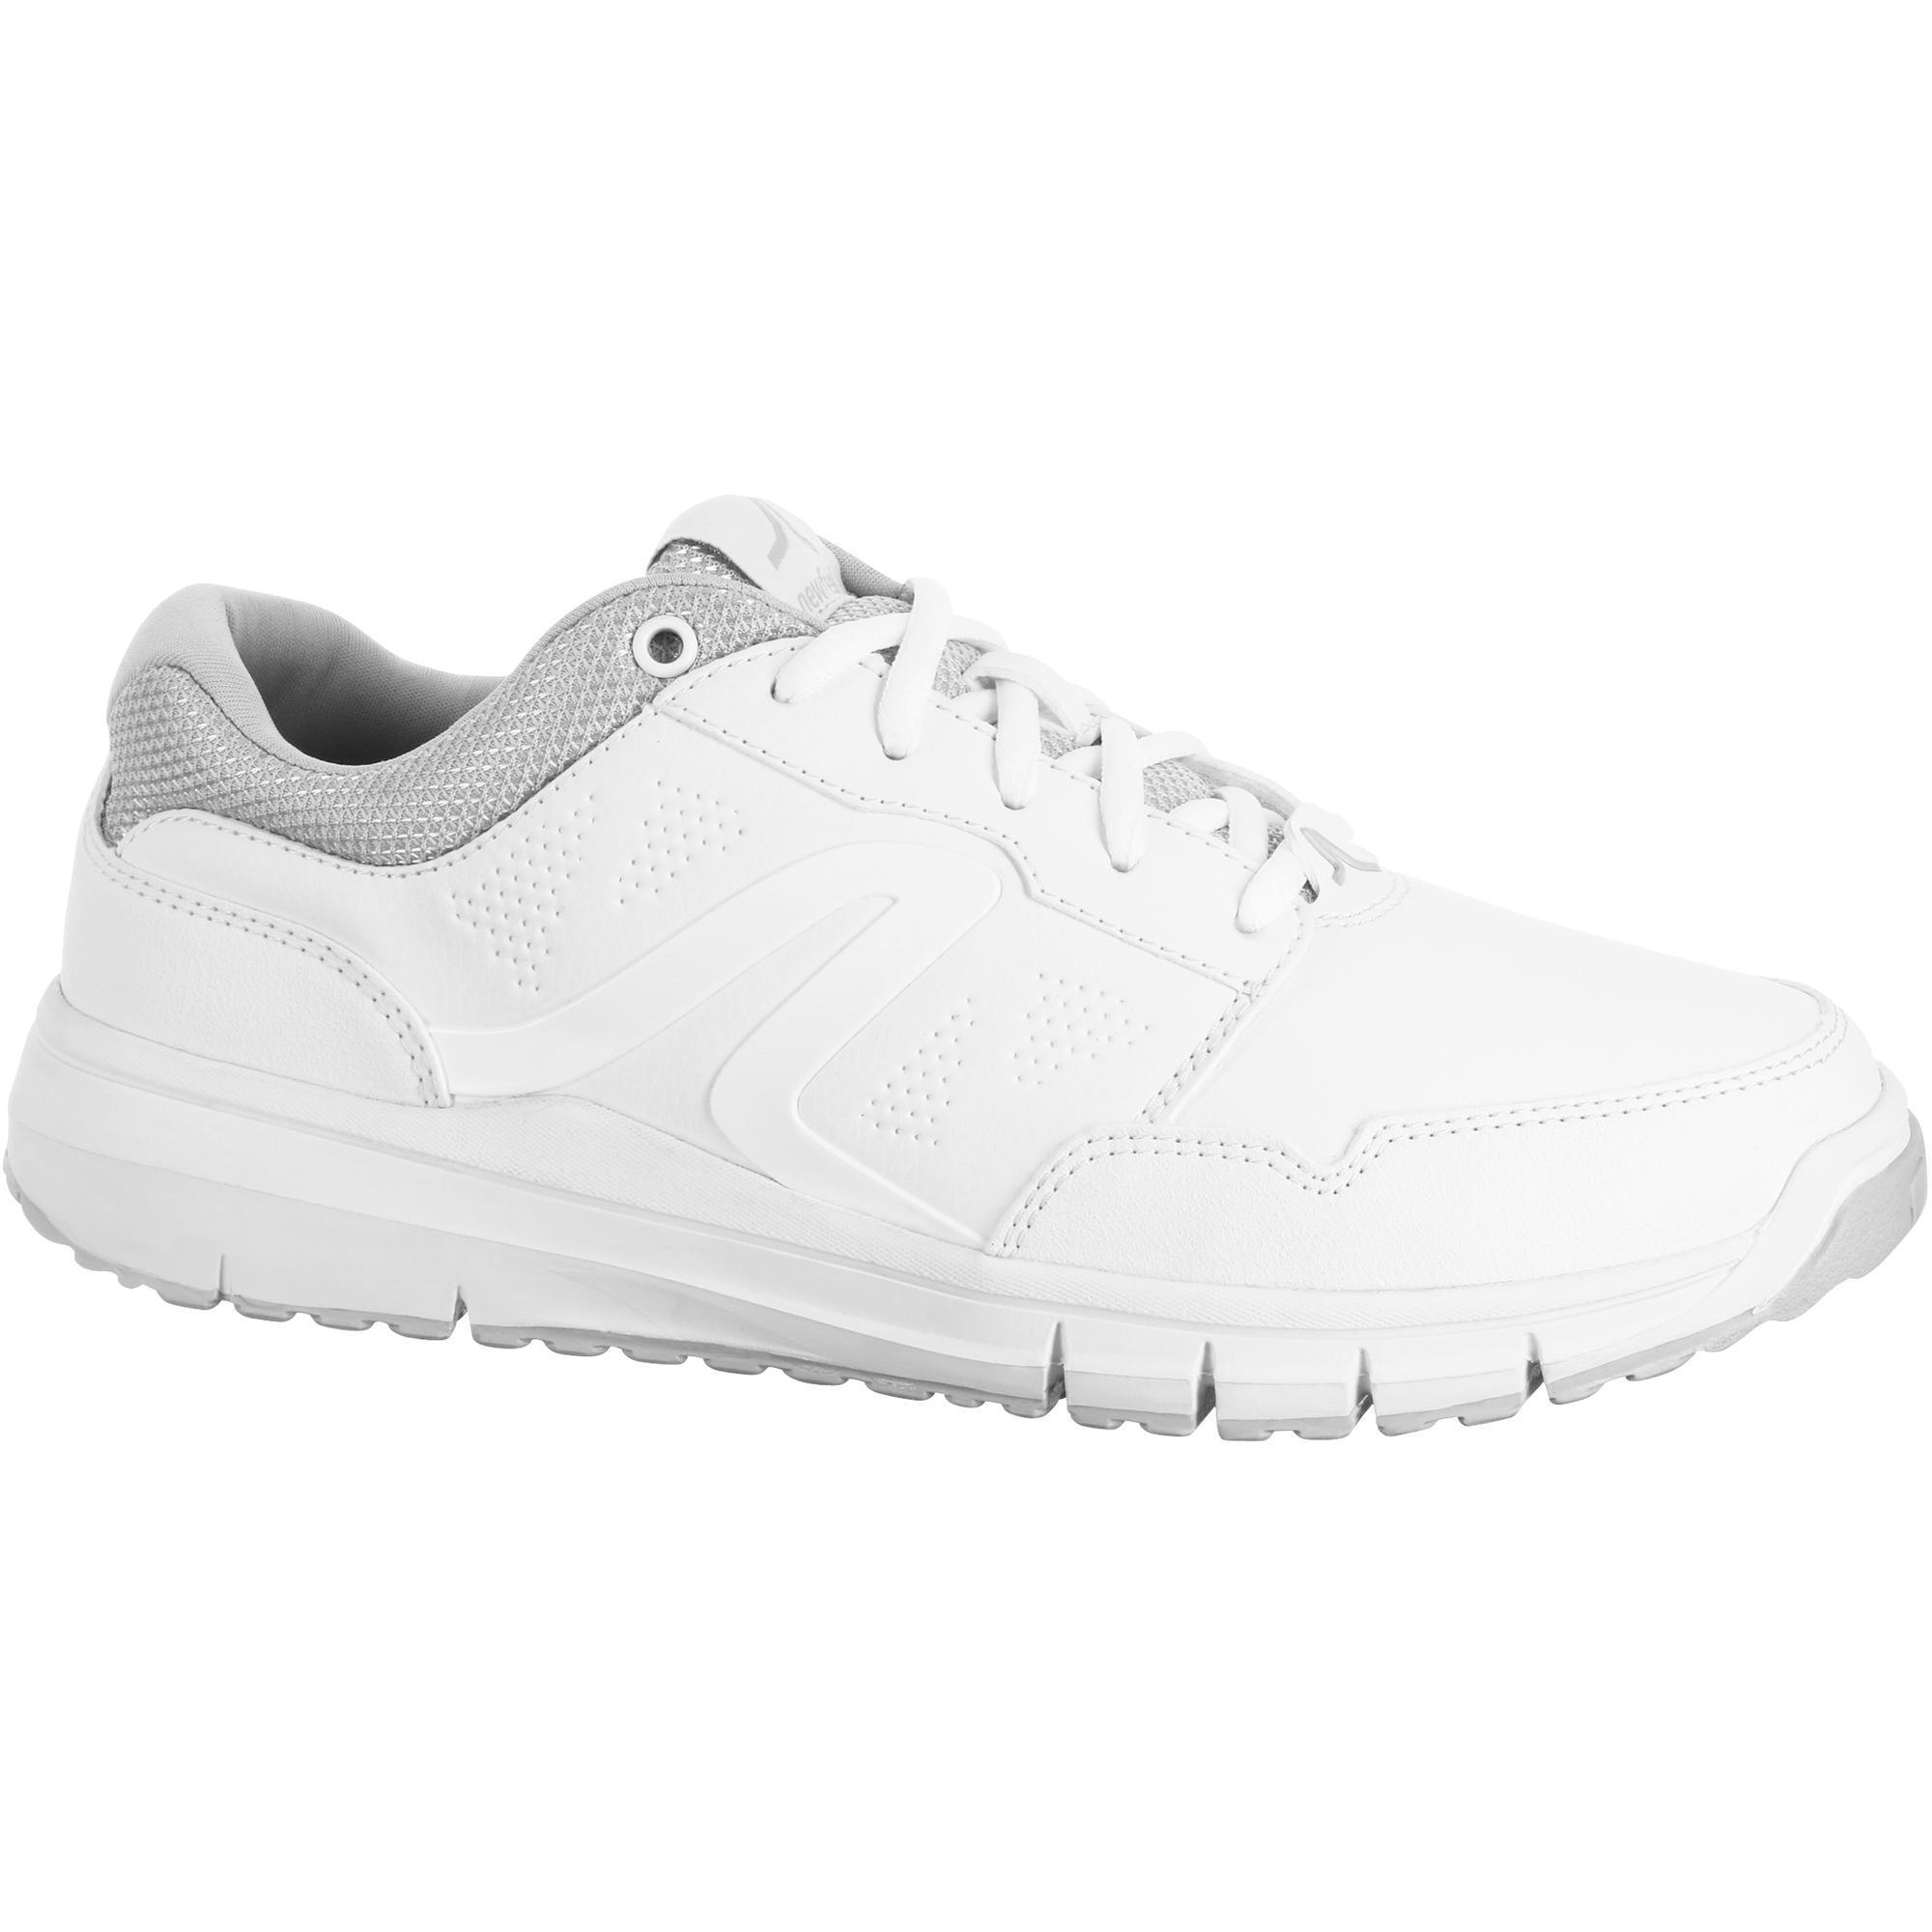 Protect 140 Women S Fitness Walking Shoes White Newfeel